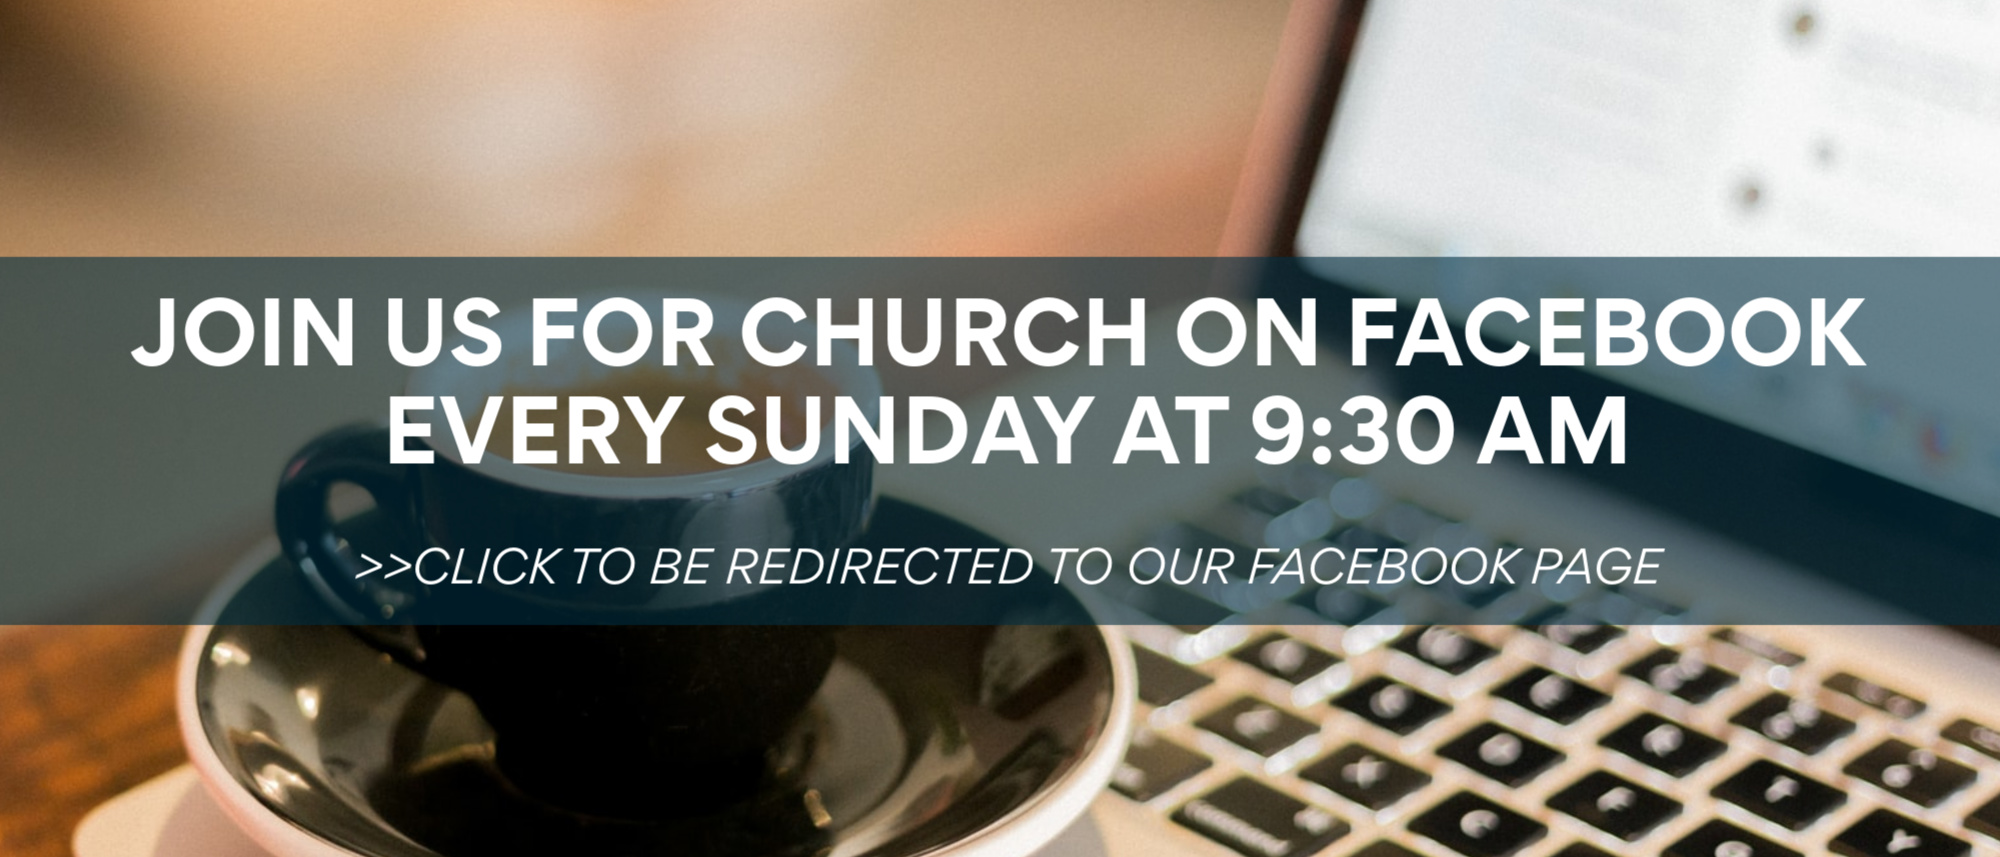 Join us for church on our Facebook page every Sunday at 9:30 AM!